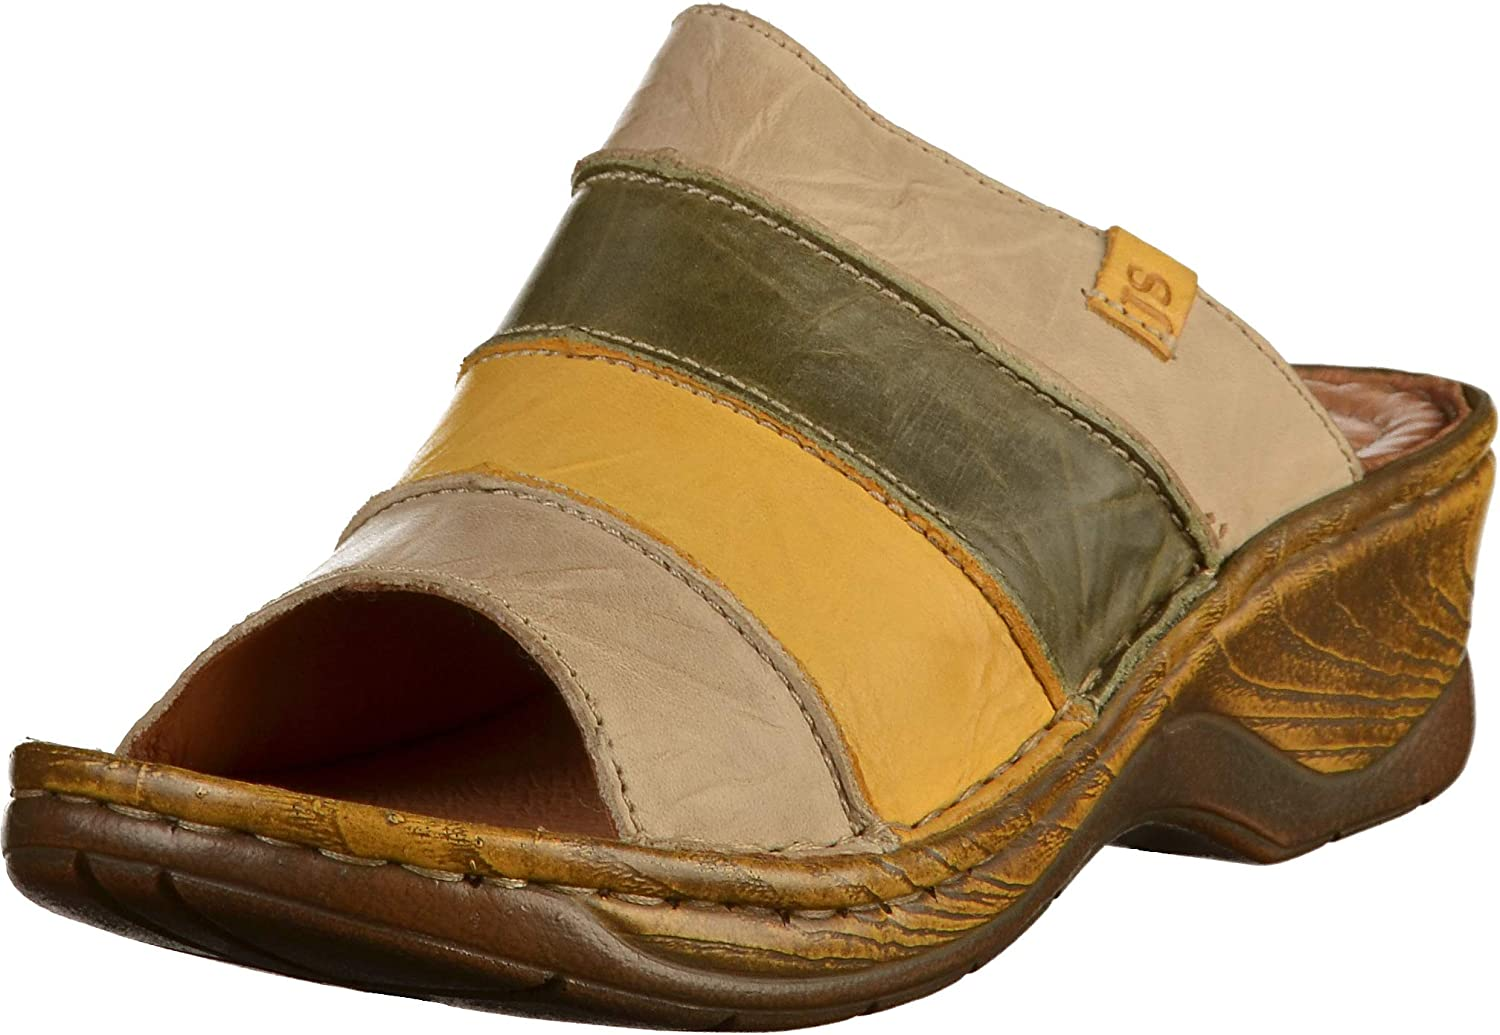 Josef Seibel Women's Mules Challenge the lowest cheap price of Japan ☆ 64 Catalonia